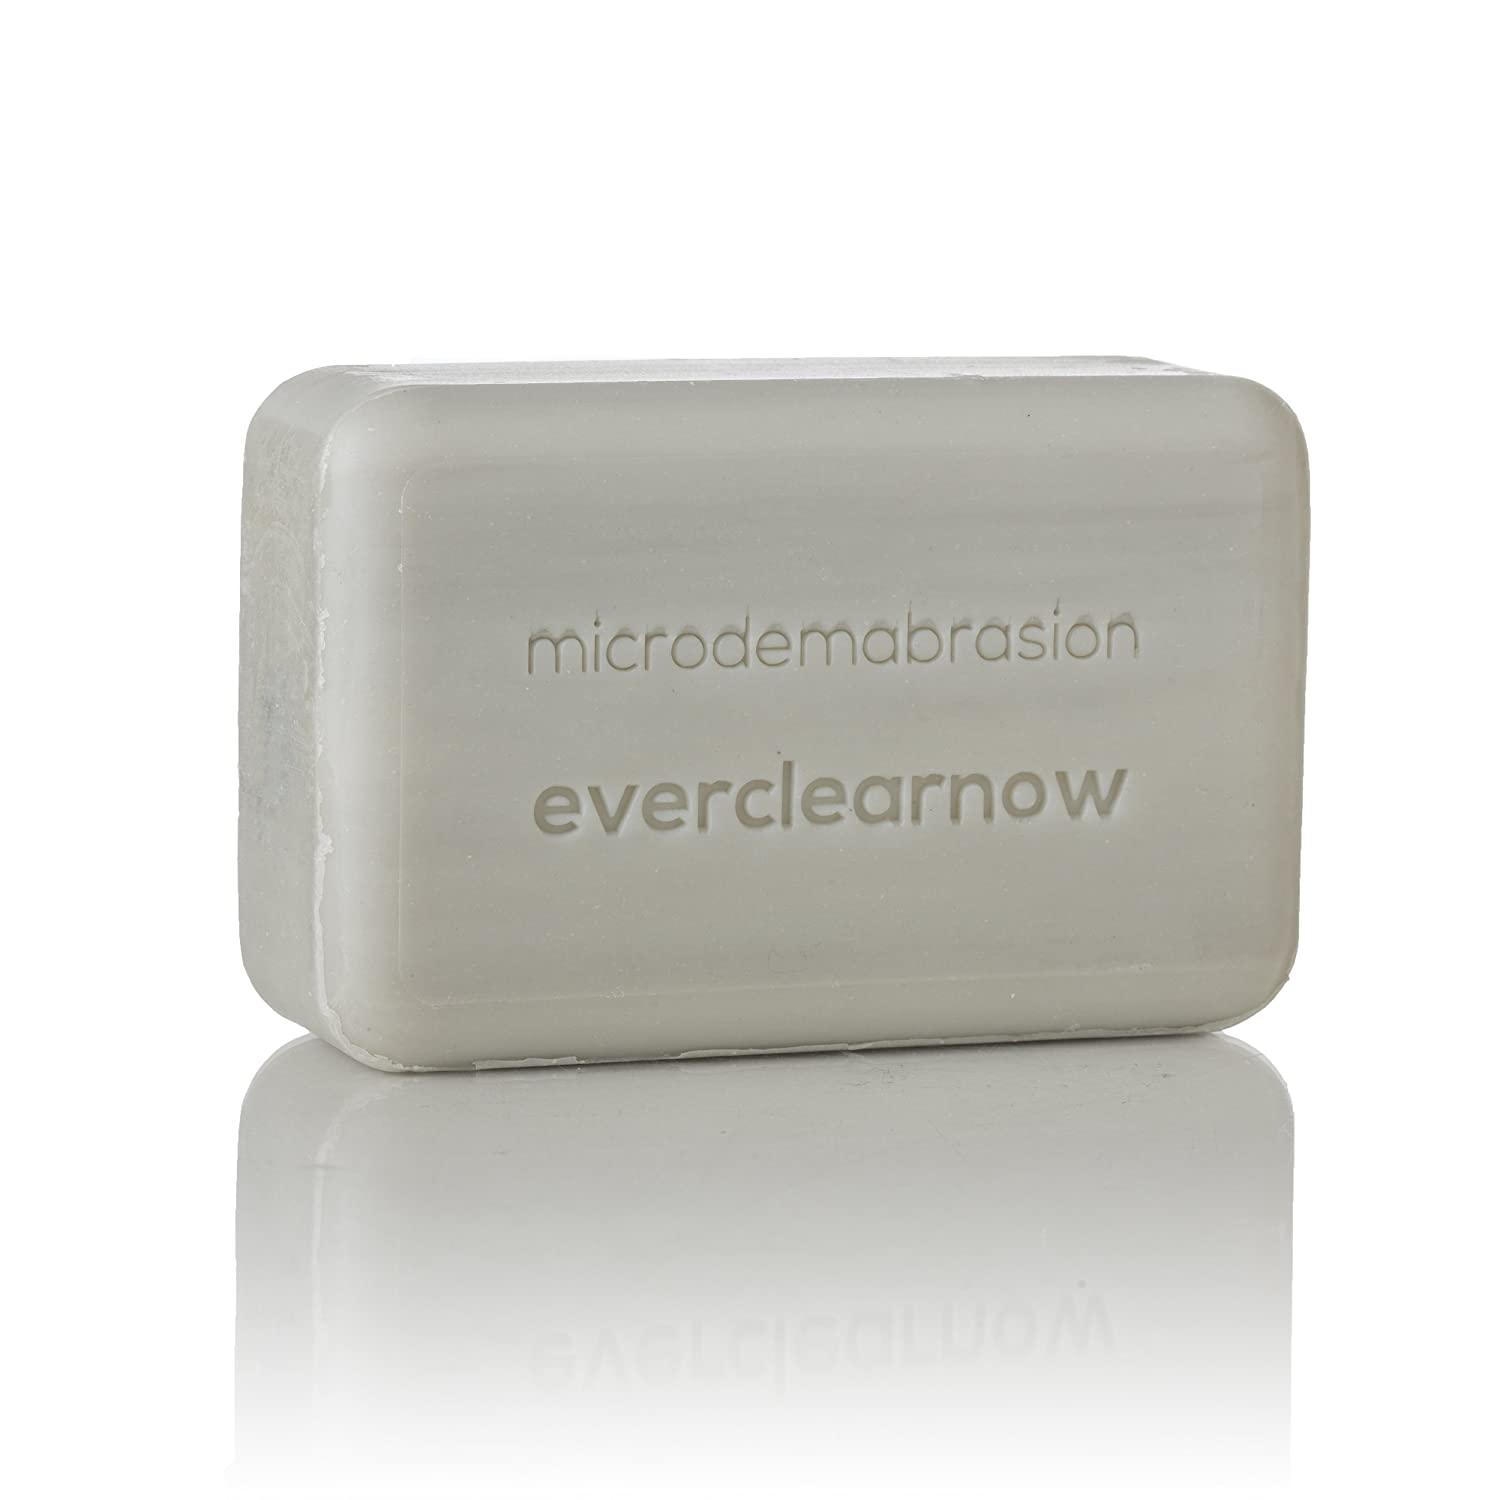 Microdermabrasion Exfoliating Deep Cleansing Soap - Large 8 Ounces Soap Bar -Everclearnow Microdermabrate and Deeply exfoliate your skin, Removes Dead Skin Cells-Perfect for helping Keratosis Pilaris